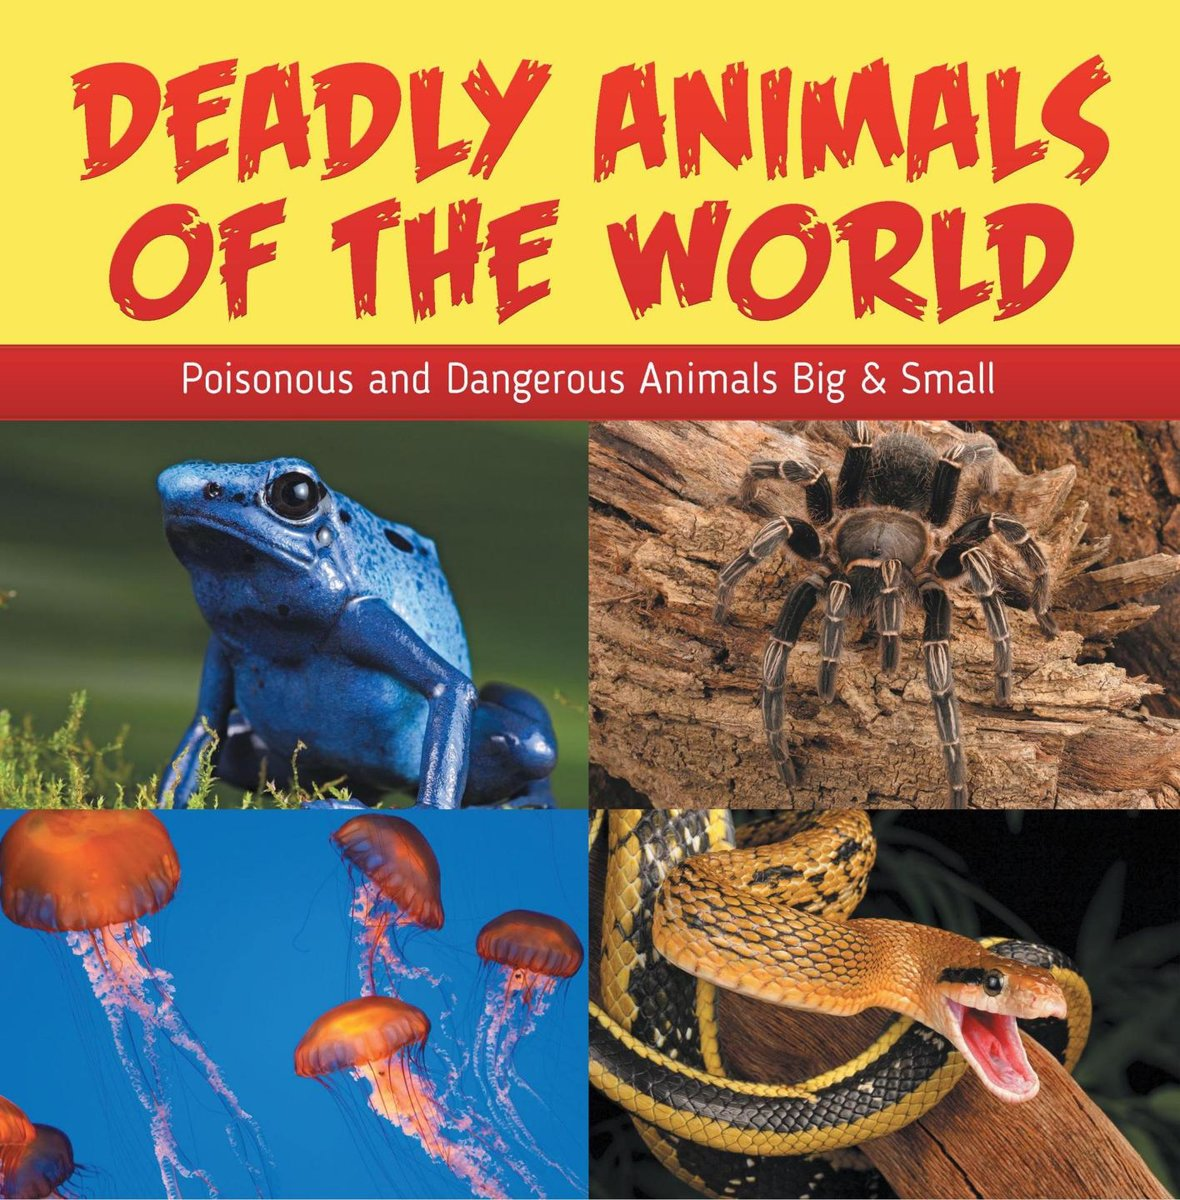 Deadly Animals Of The World: Poisonous and Dangerous Animals Big & Small